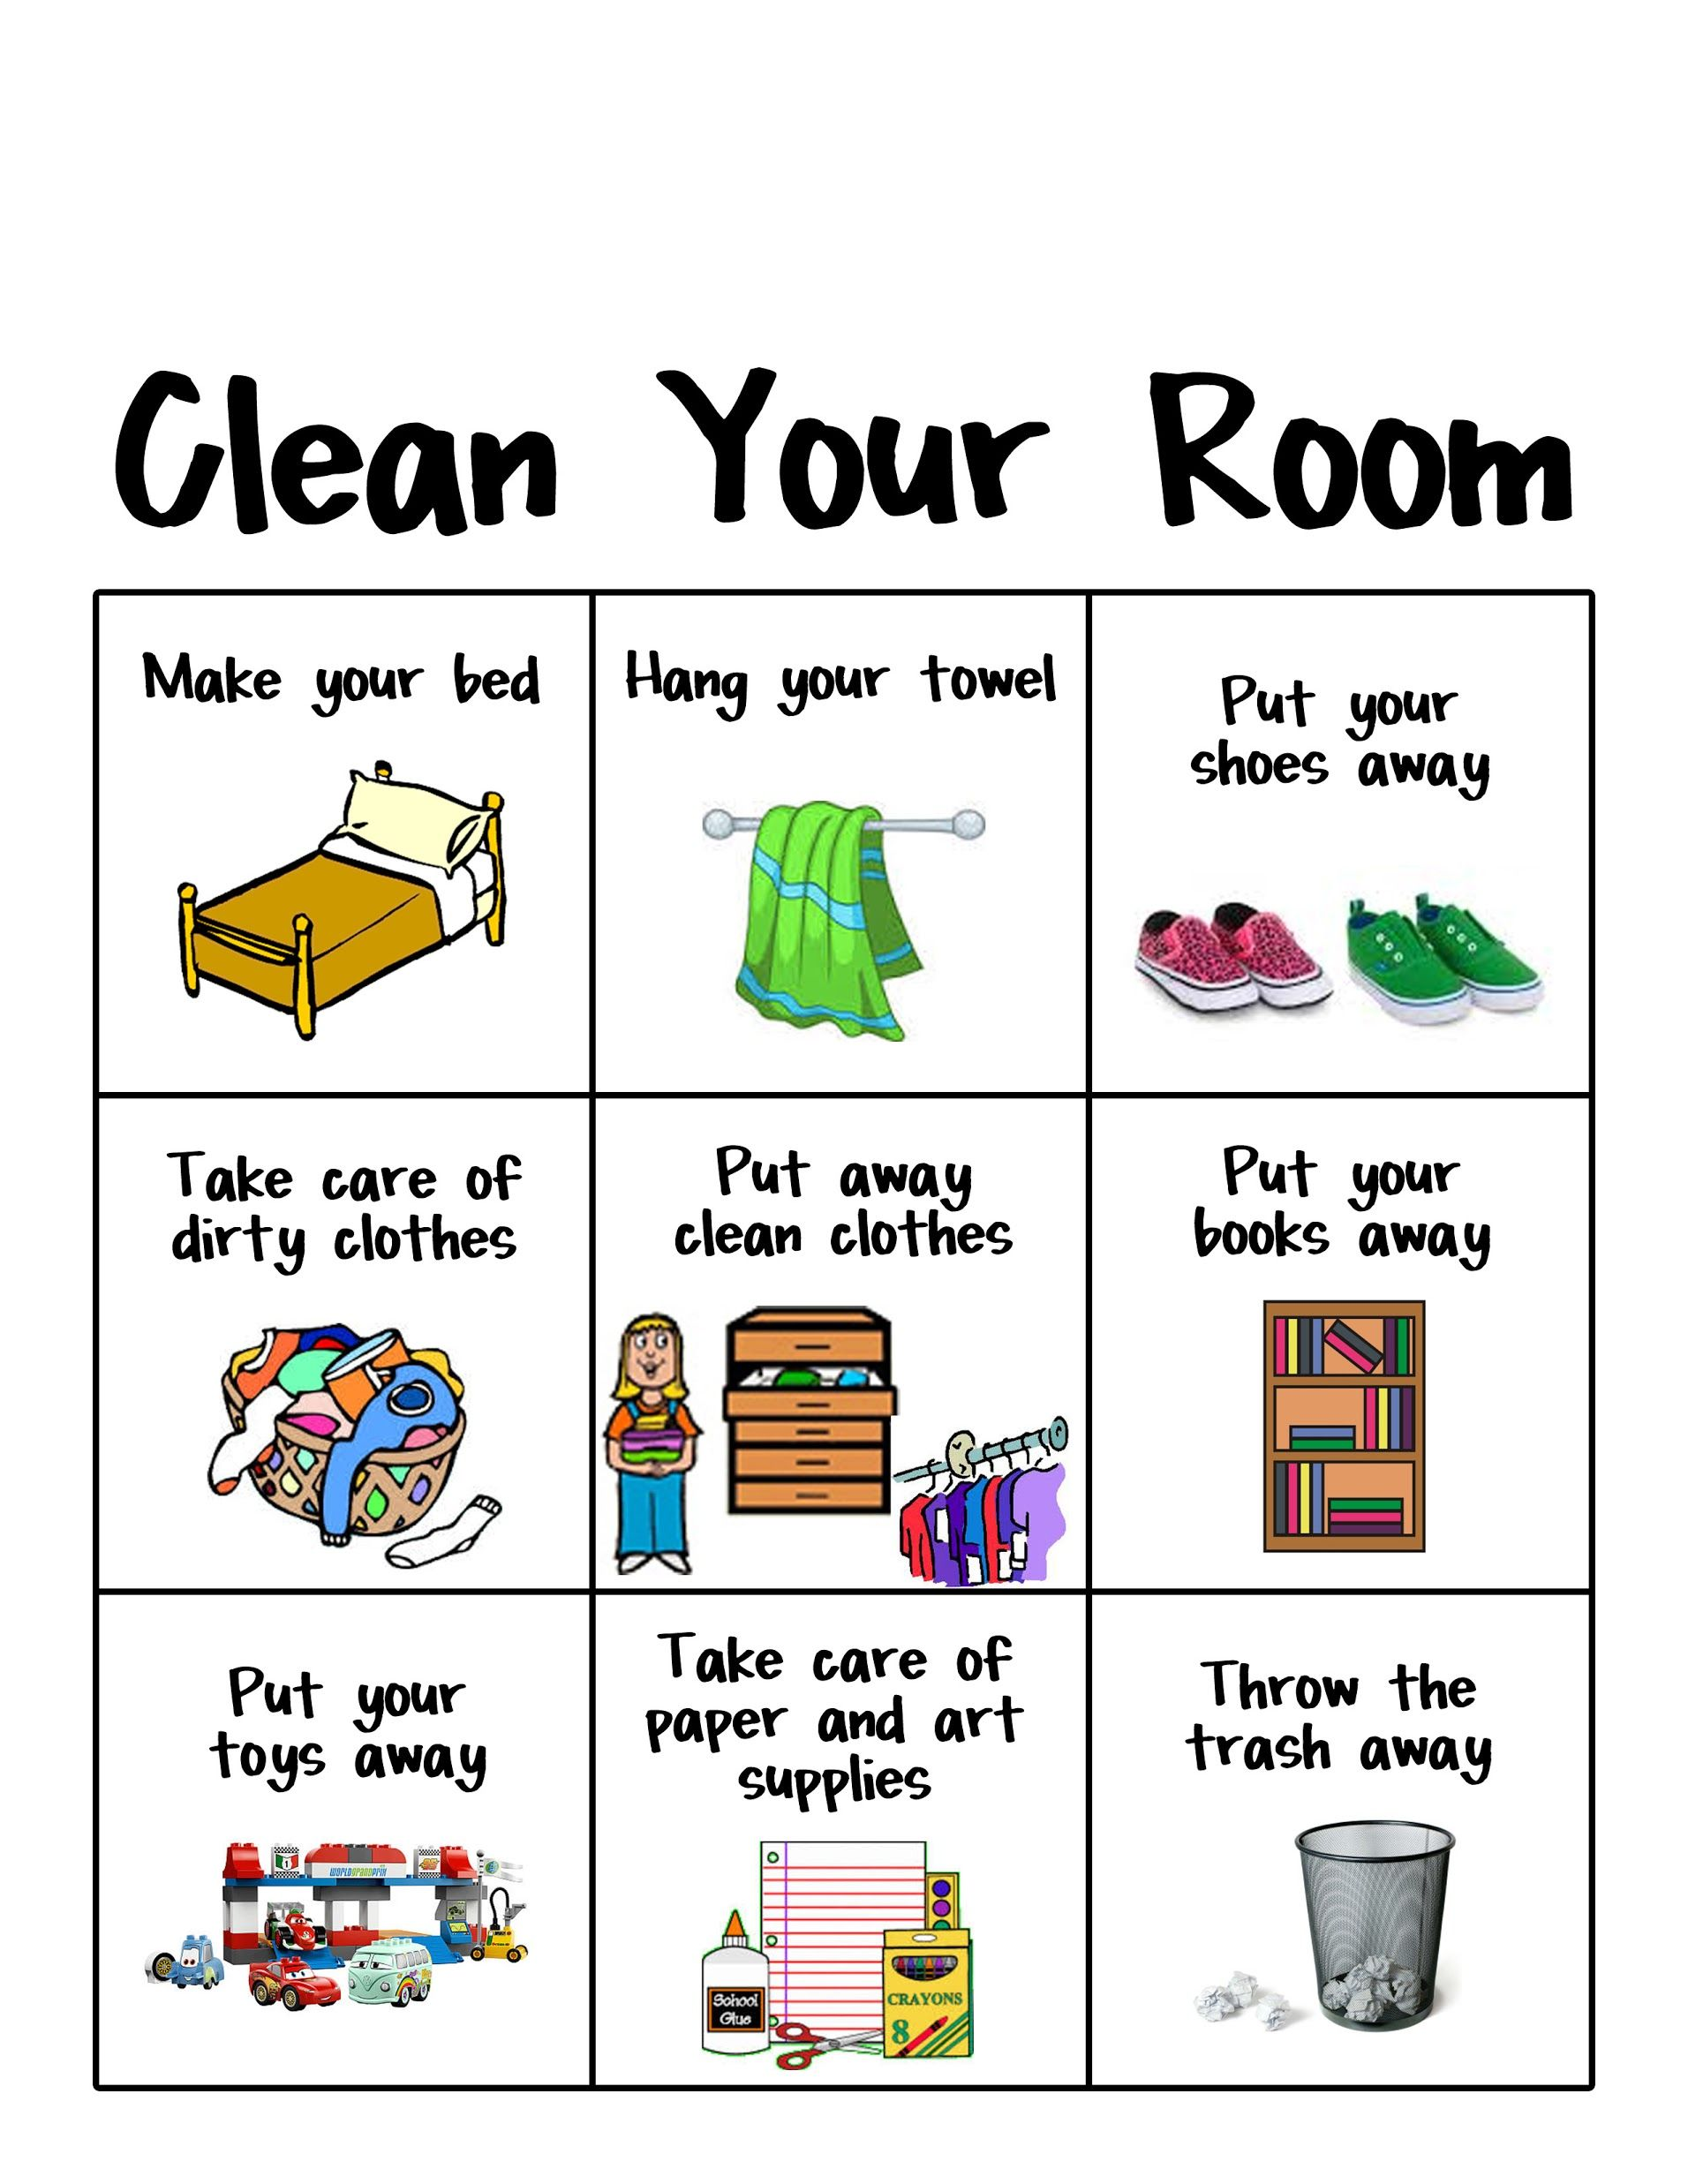 Clean clipart clean bedroom. Displaying your room chart